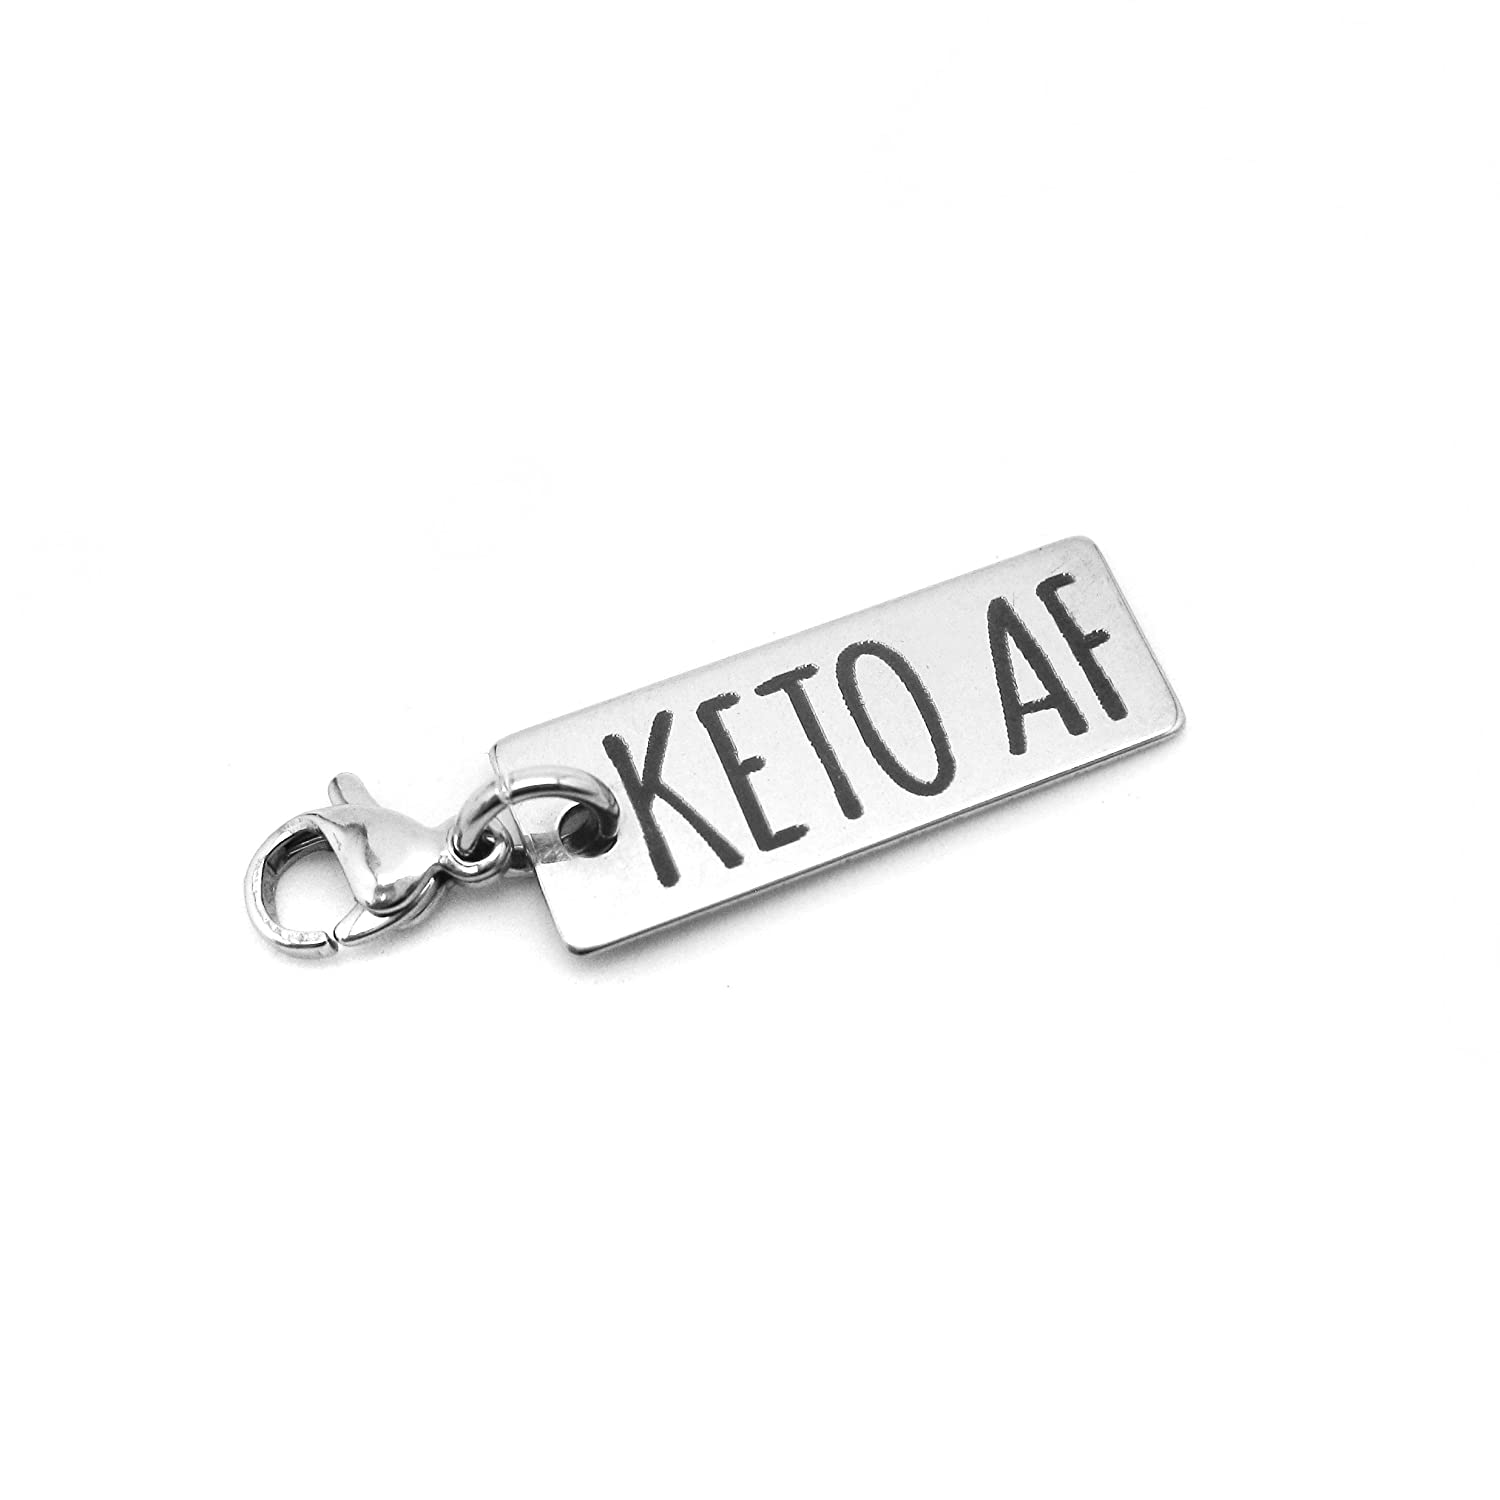 KETO AF Stainless Steel Charm with Clasp - Funny Ketogenic Weight Loss Jewelry and Fitness Charms For Motivation - Tarnish Free Hypoallergenic Stainless Steel